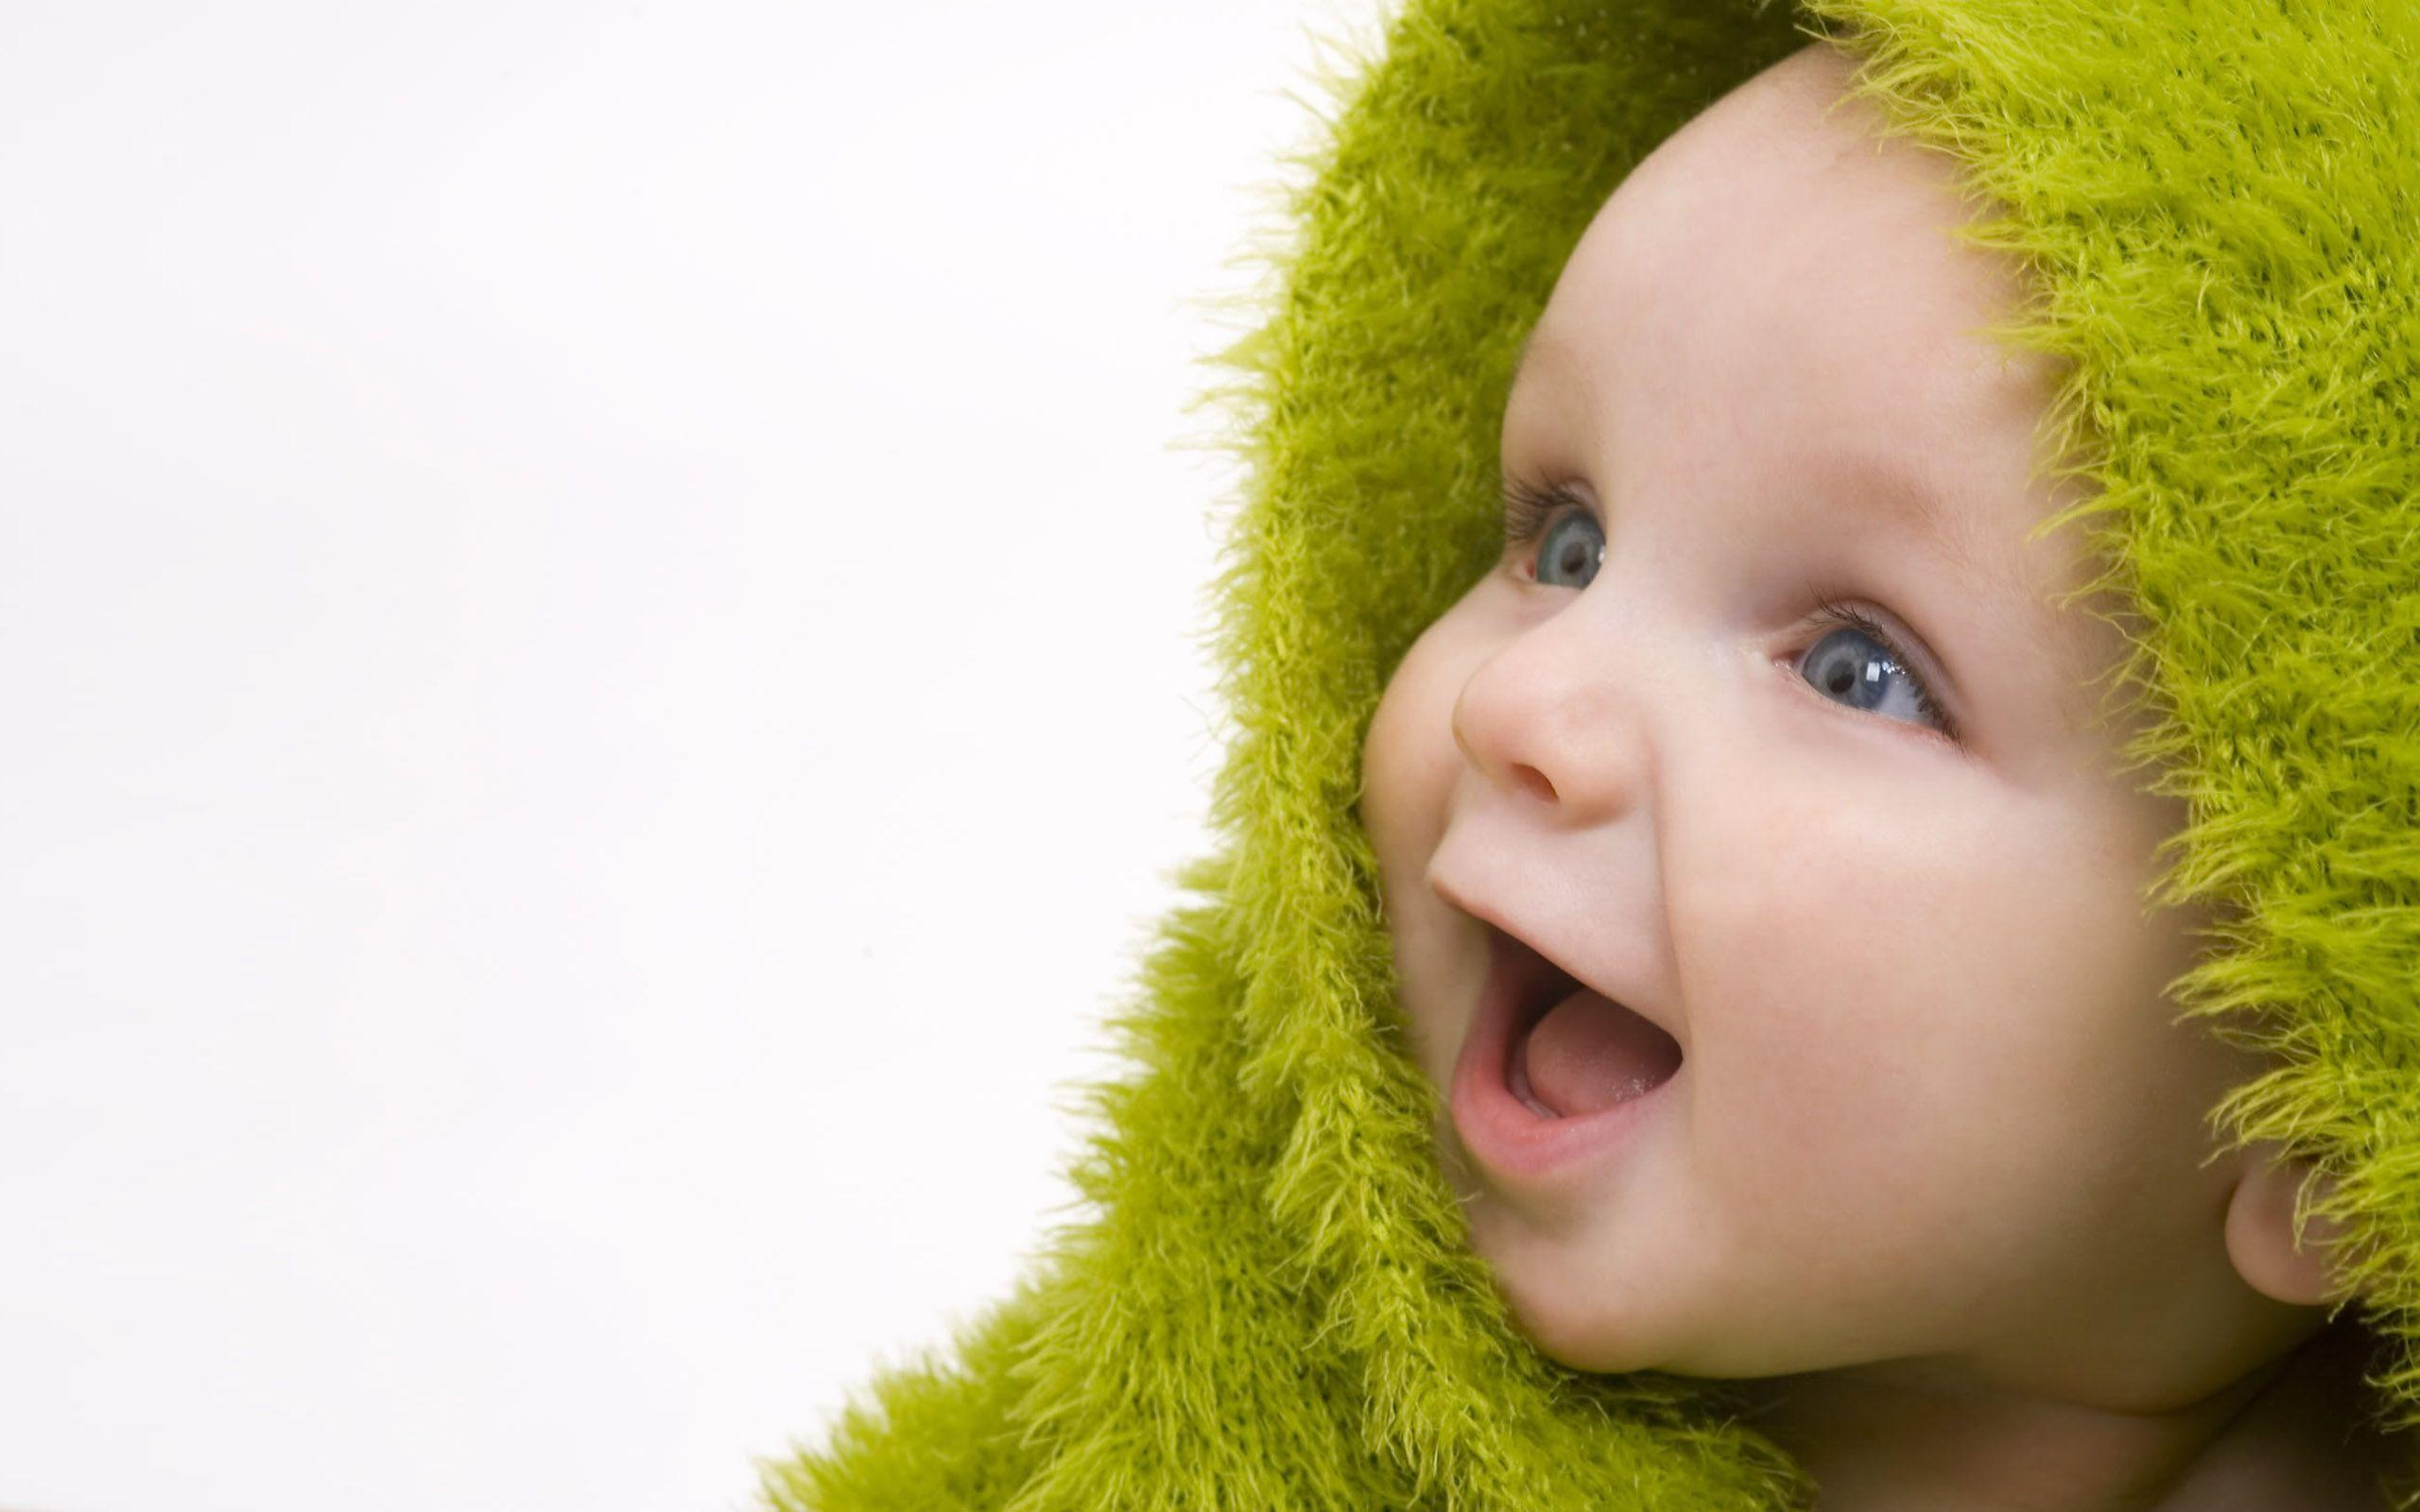 Cute baby girl plant wallpapers hd wallpapers inn